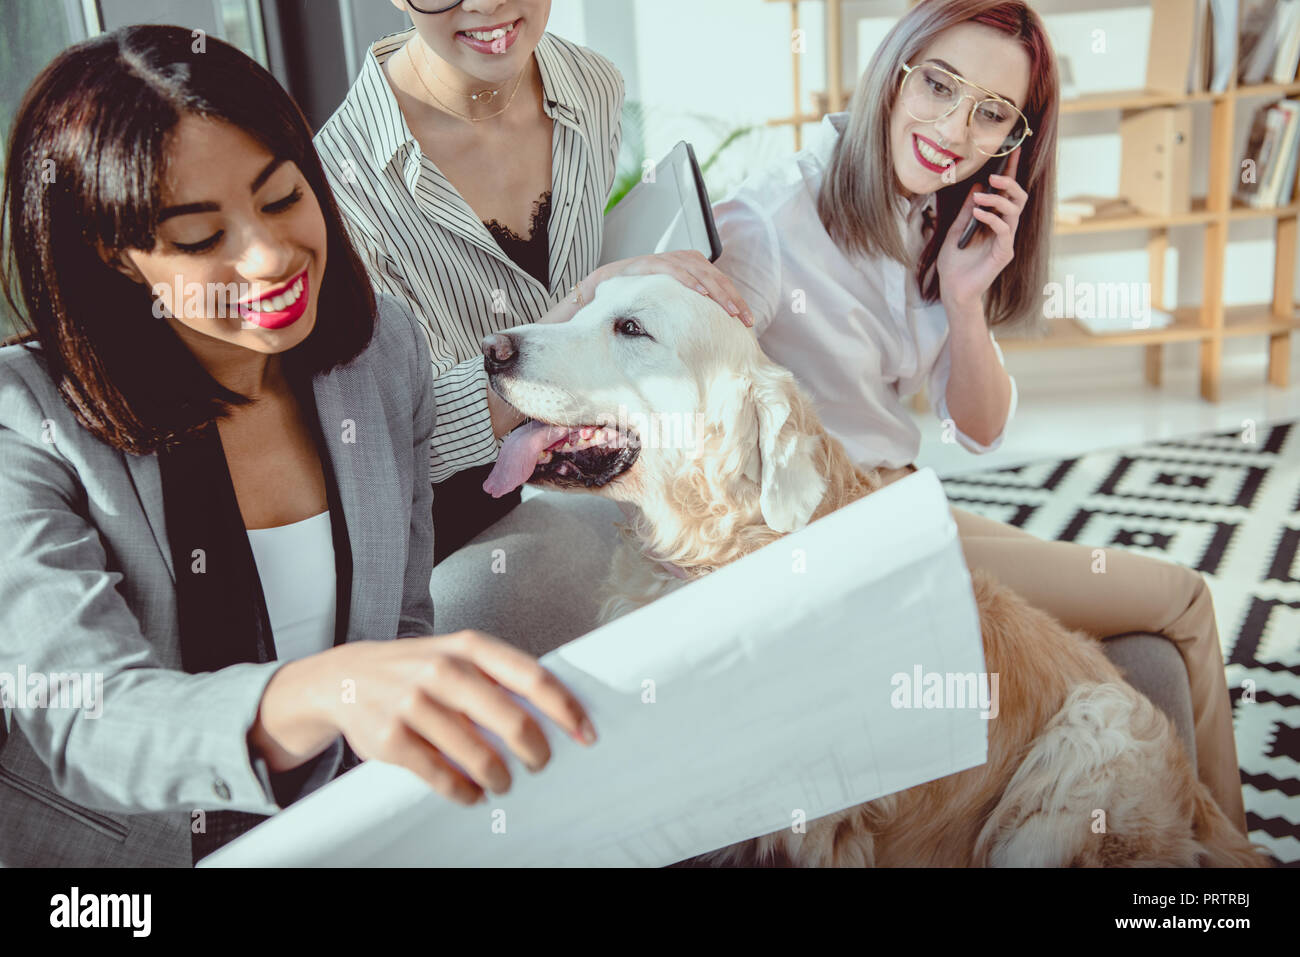 young multiethnic businesswomen in formal wear fooling around with dog at office - Stock Image